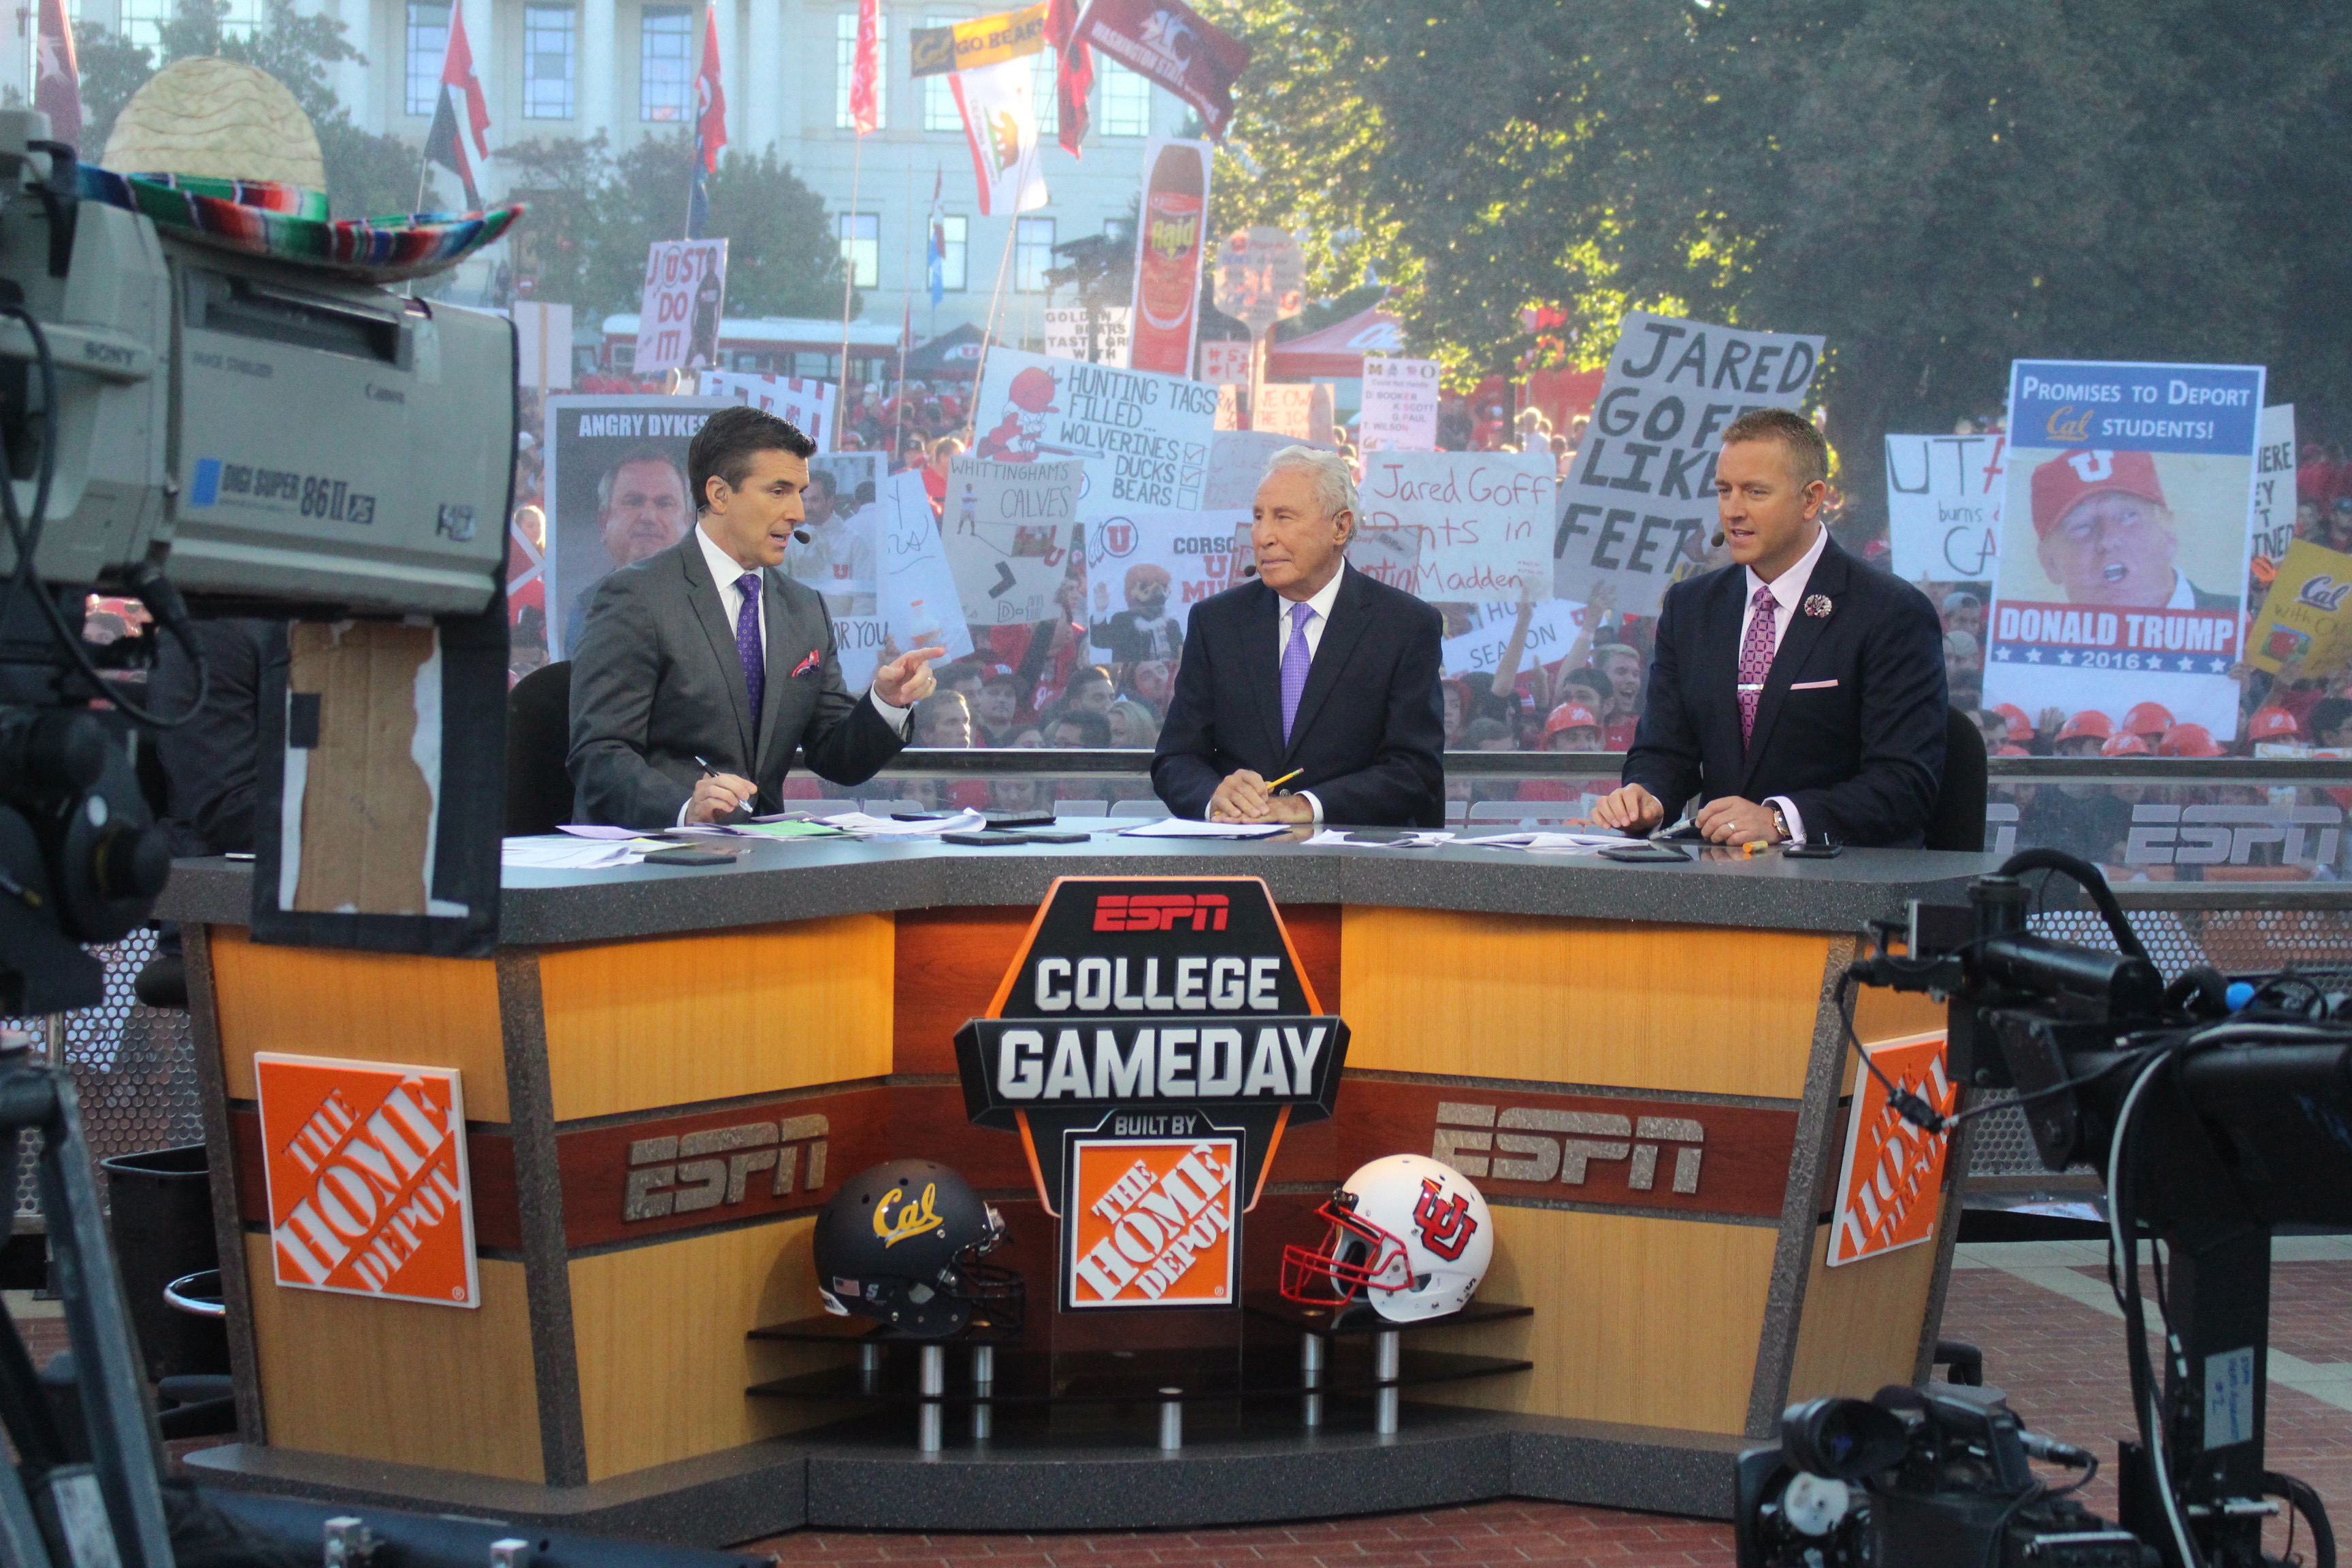 college espn gameday espn schedule